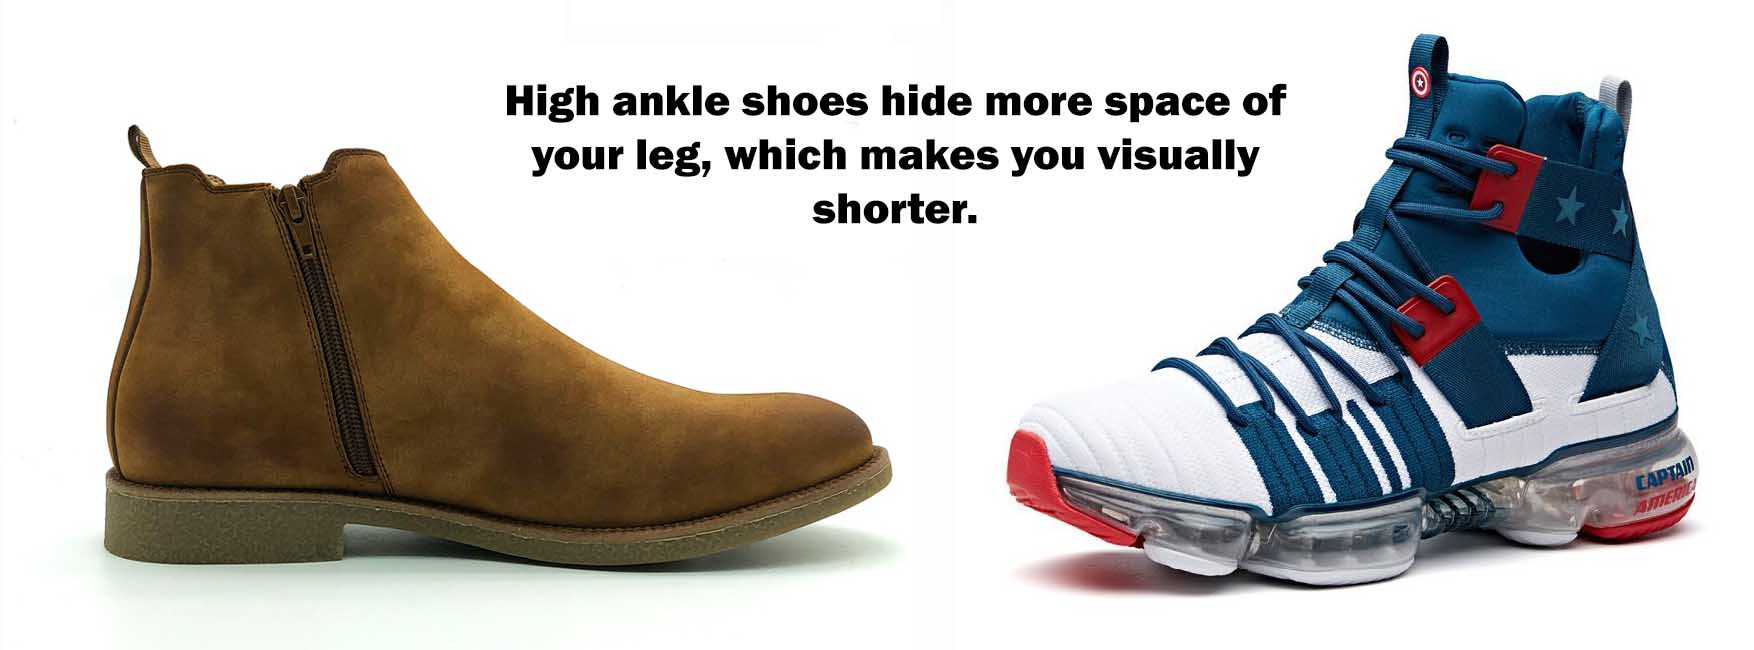 high ankle shoes make you look shorter